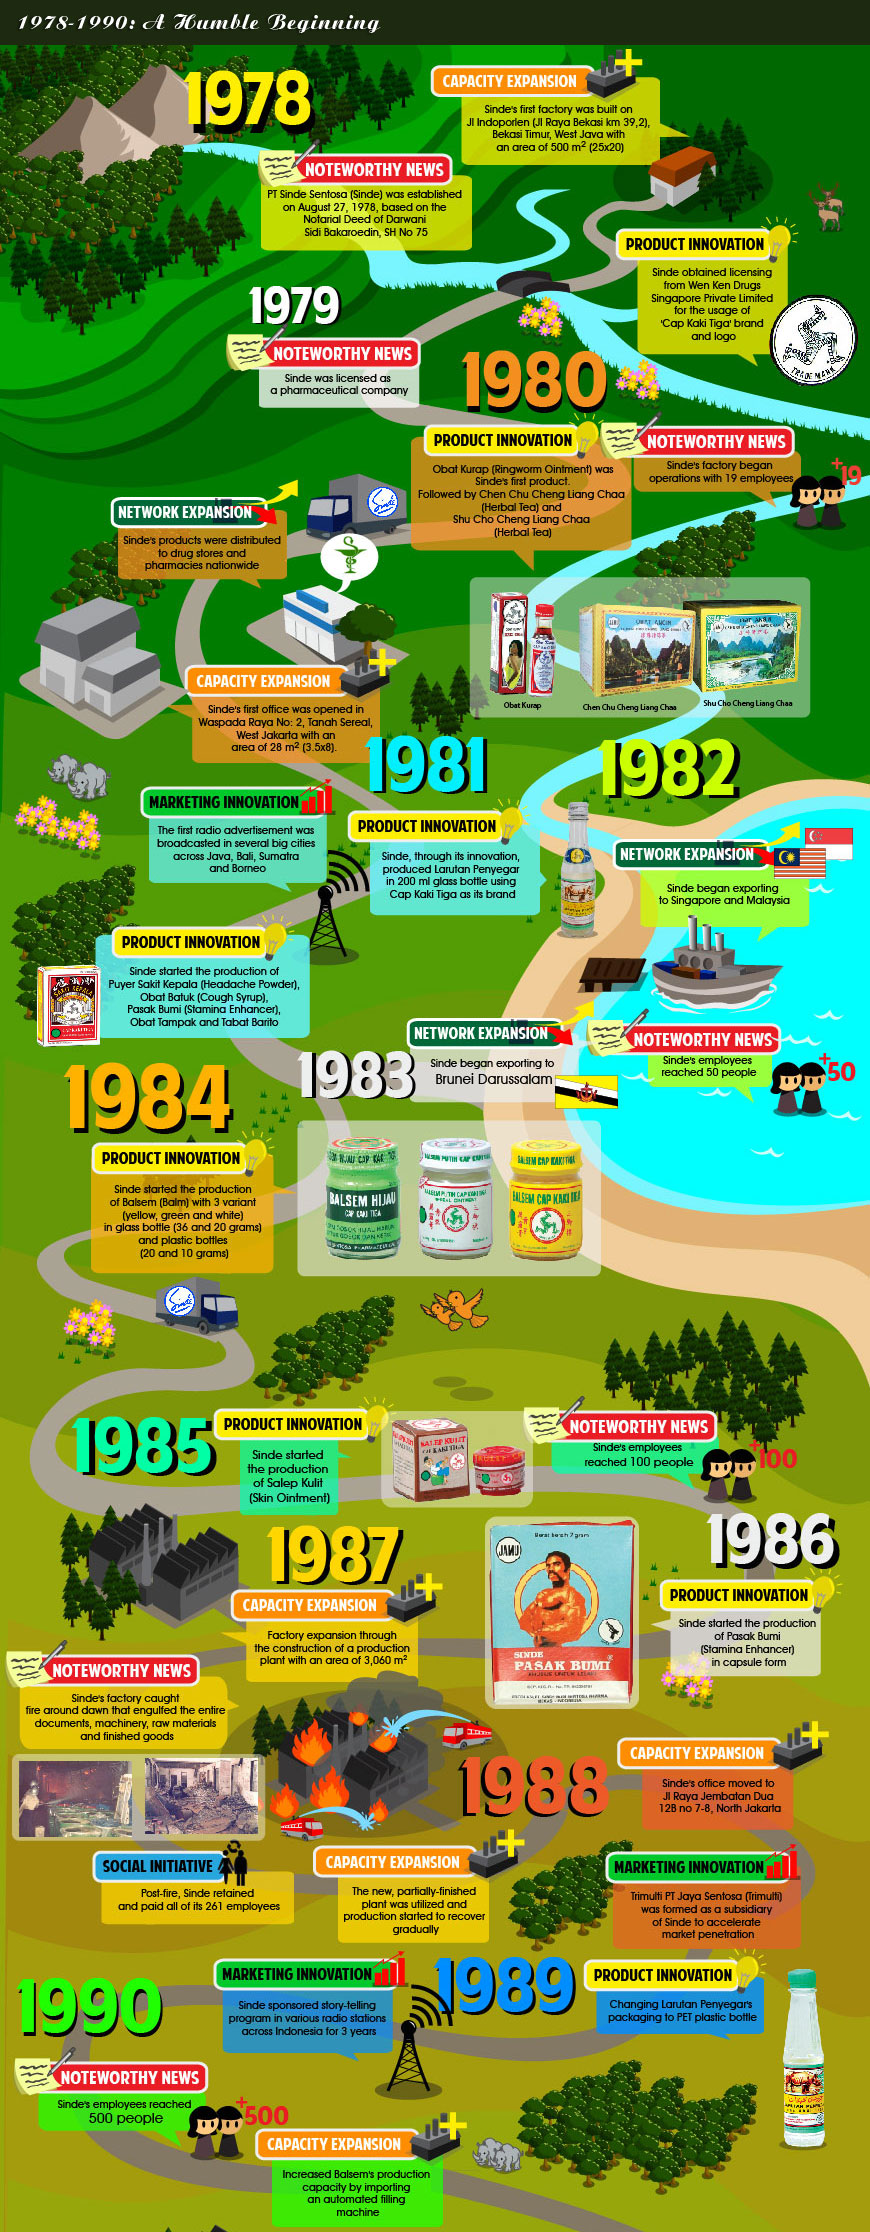 infographic-sinde-history-1